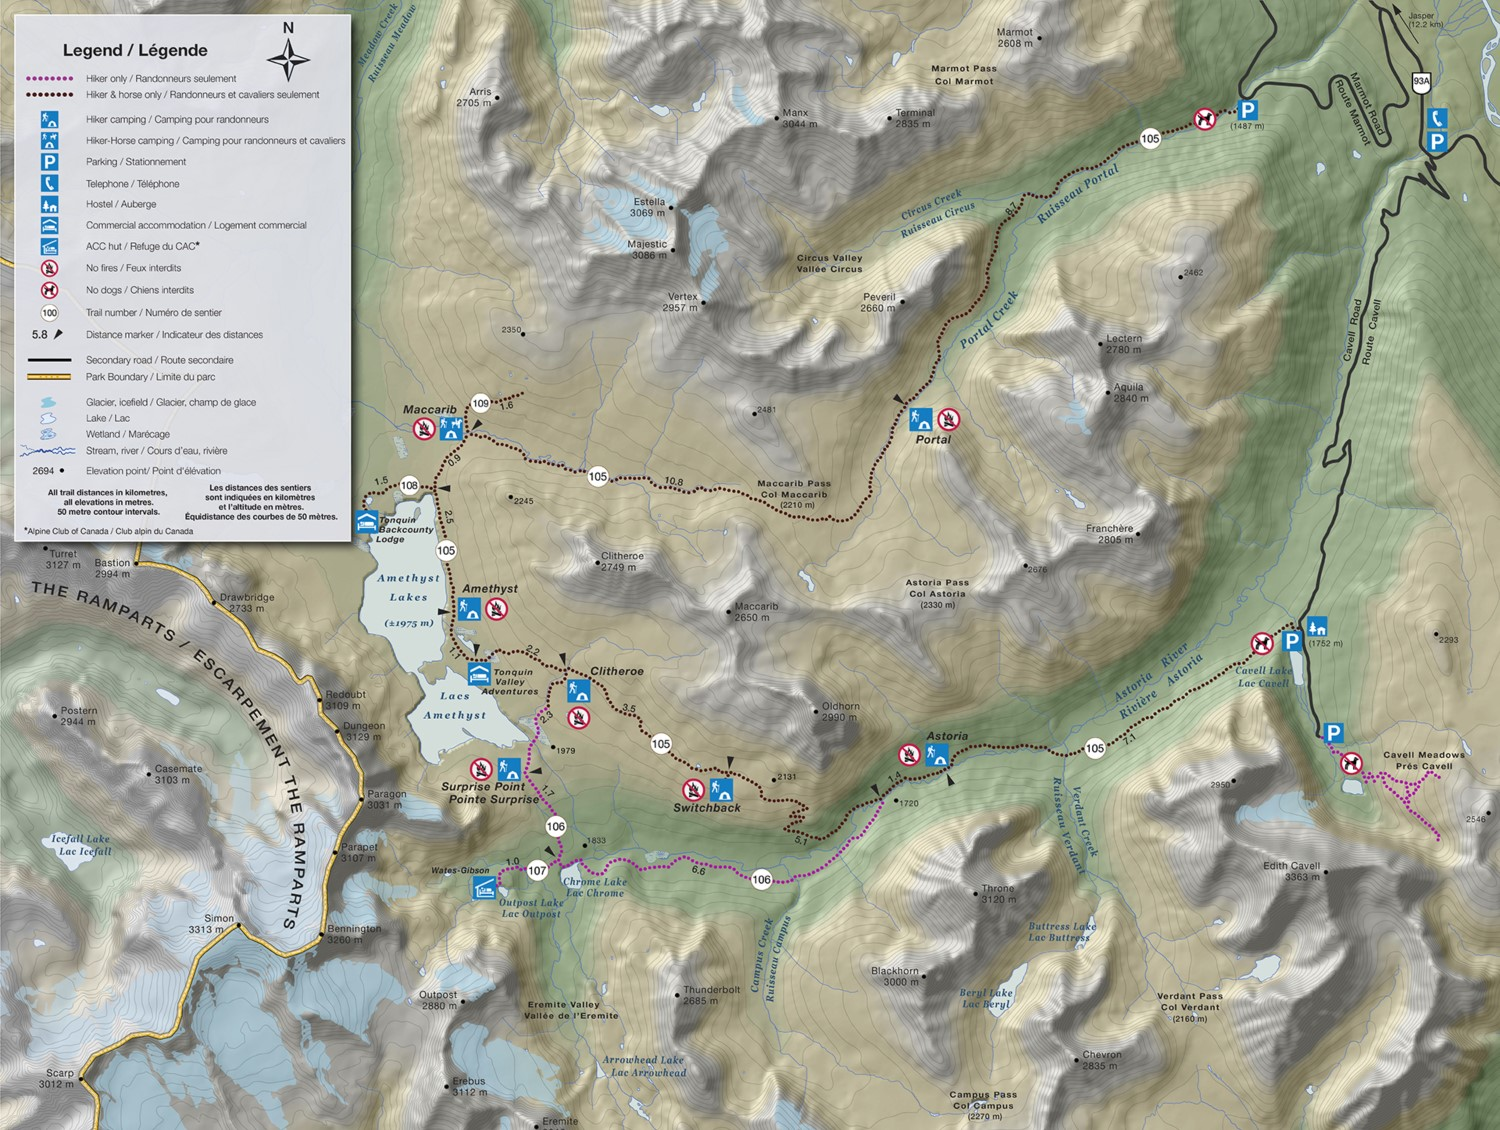 Map of the trails and campsites in the Tonquin Valley (Source: Parks Canada).